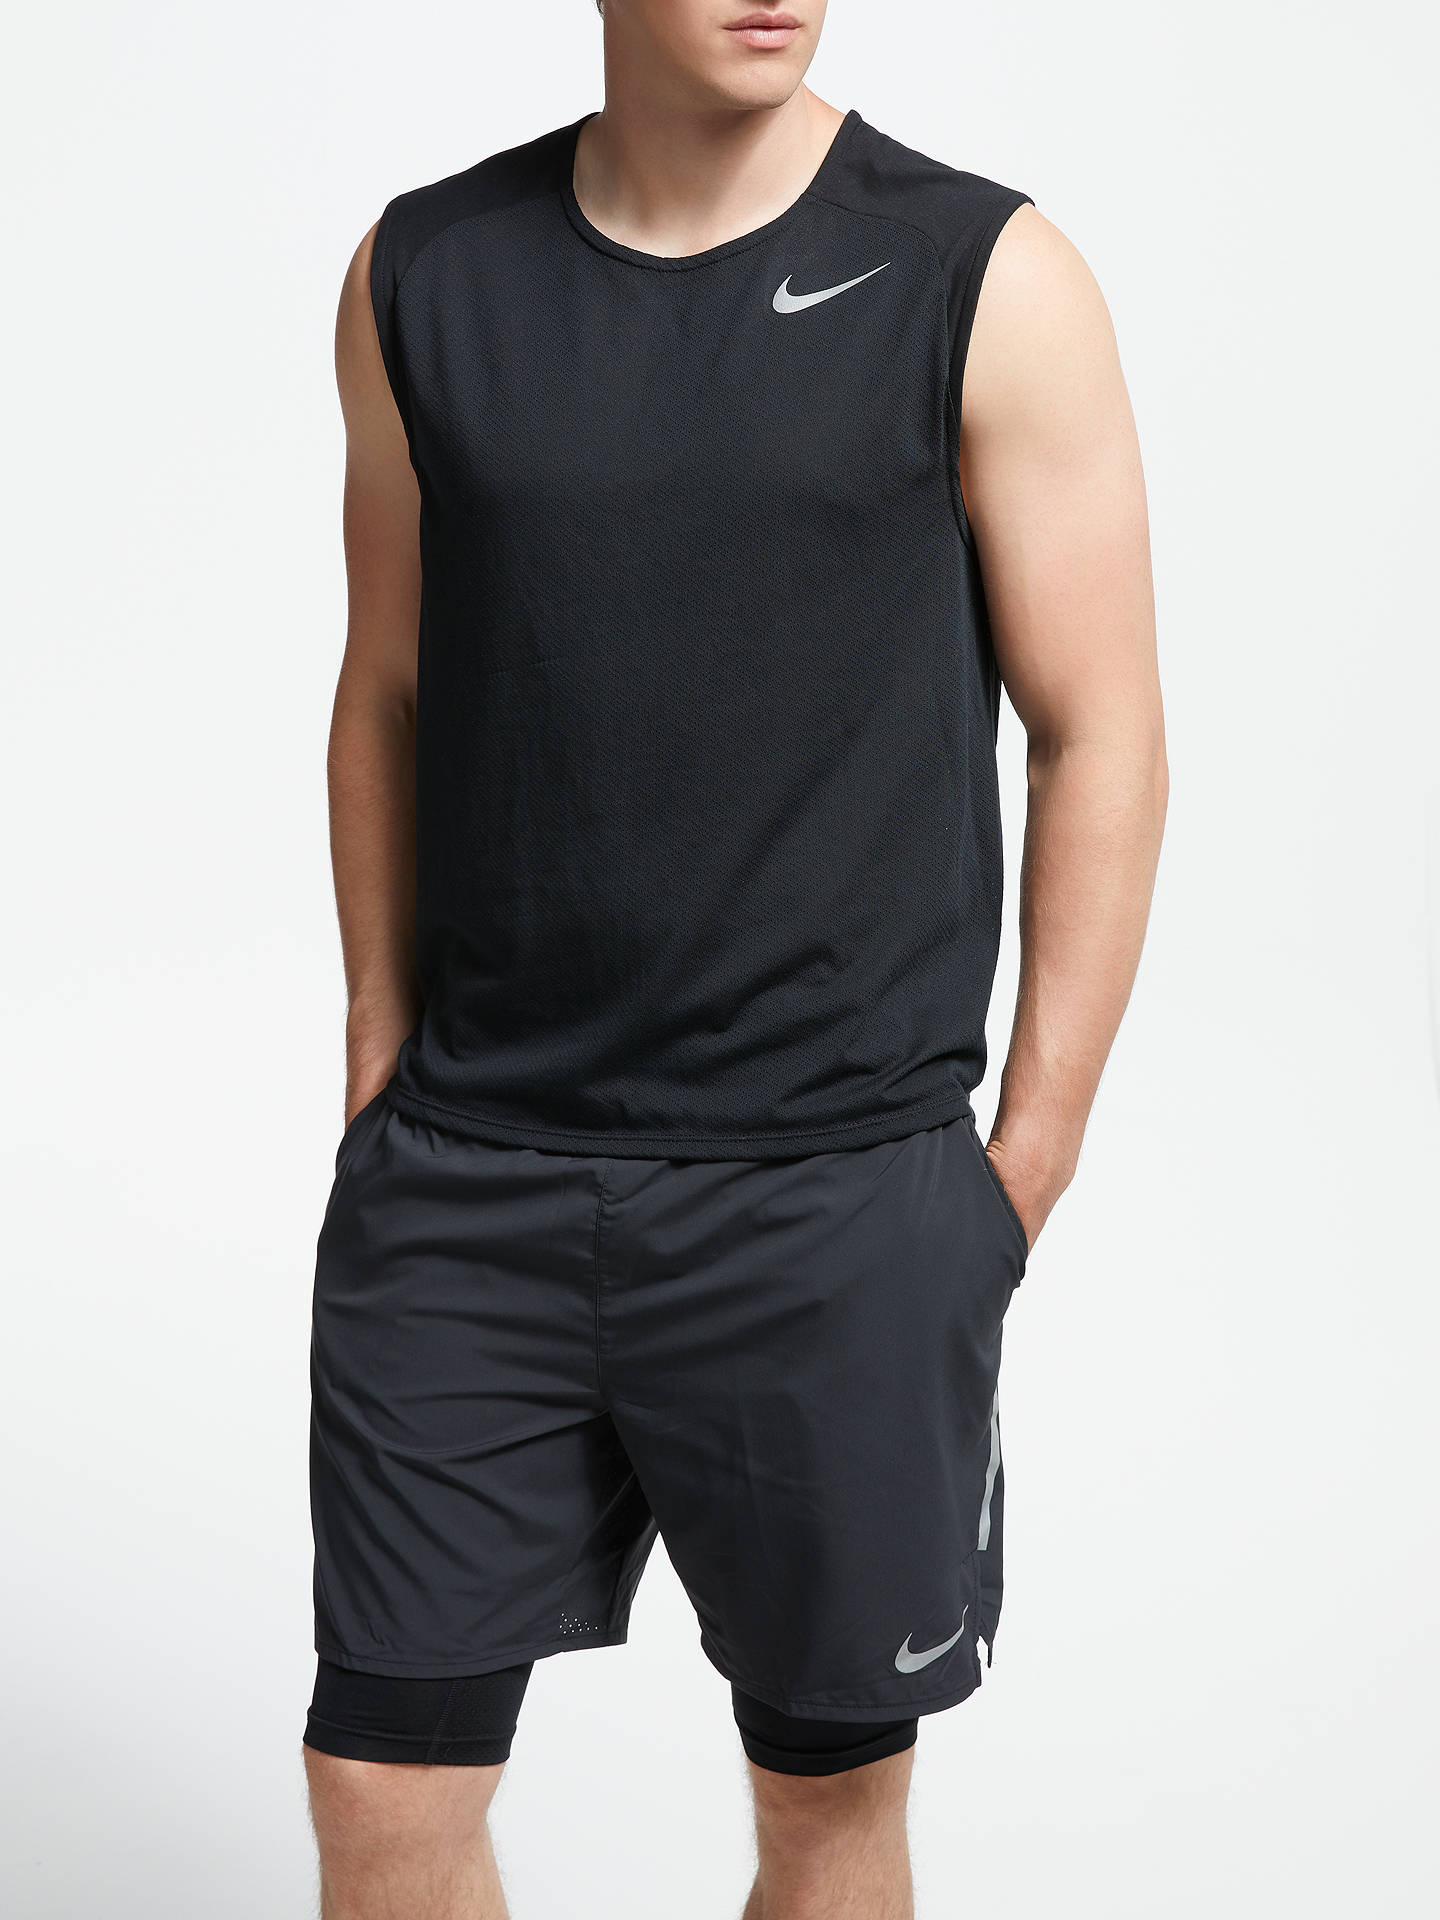 Nike Mens Breathe Sleeveless Running Shirt